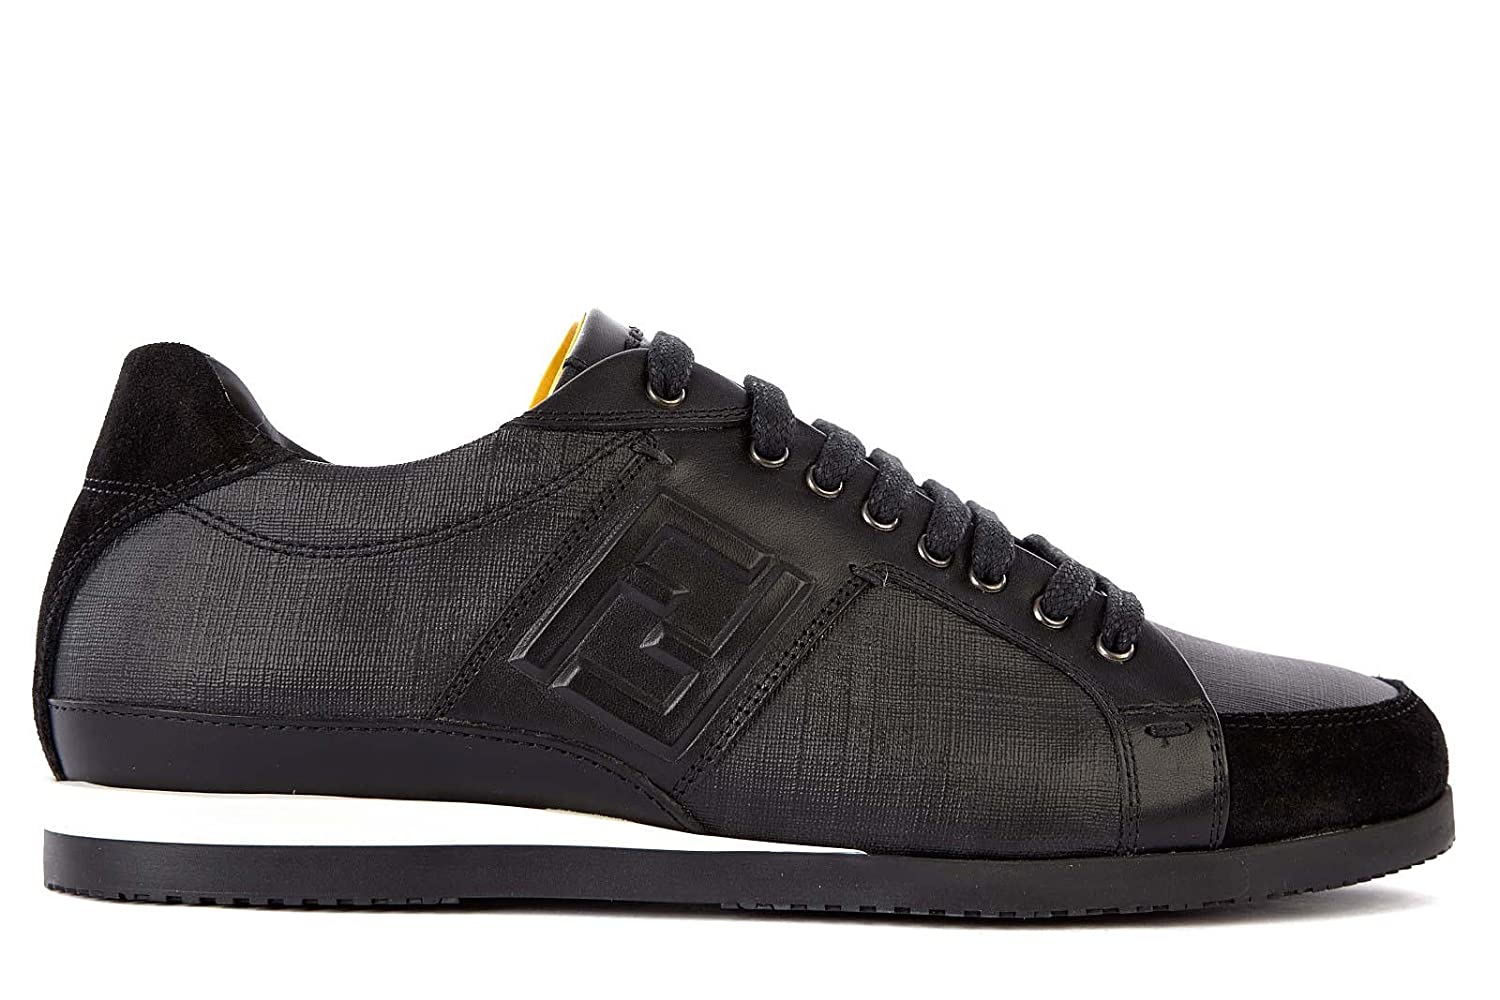 e4848e57 Fendi men's shoes leather trainers sneakers black UK size 10 7E0748 ...